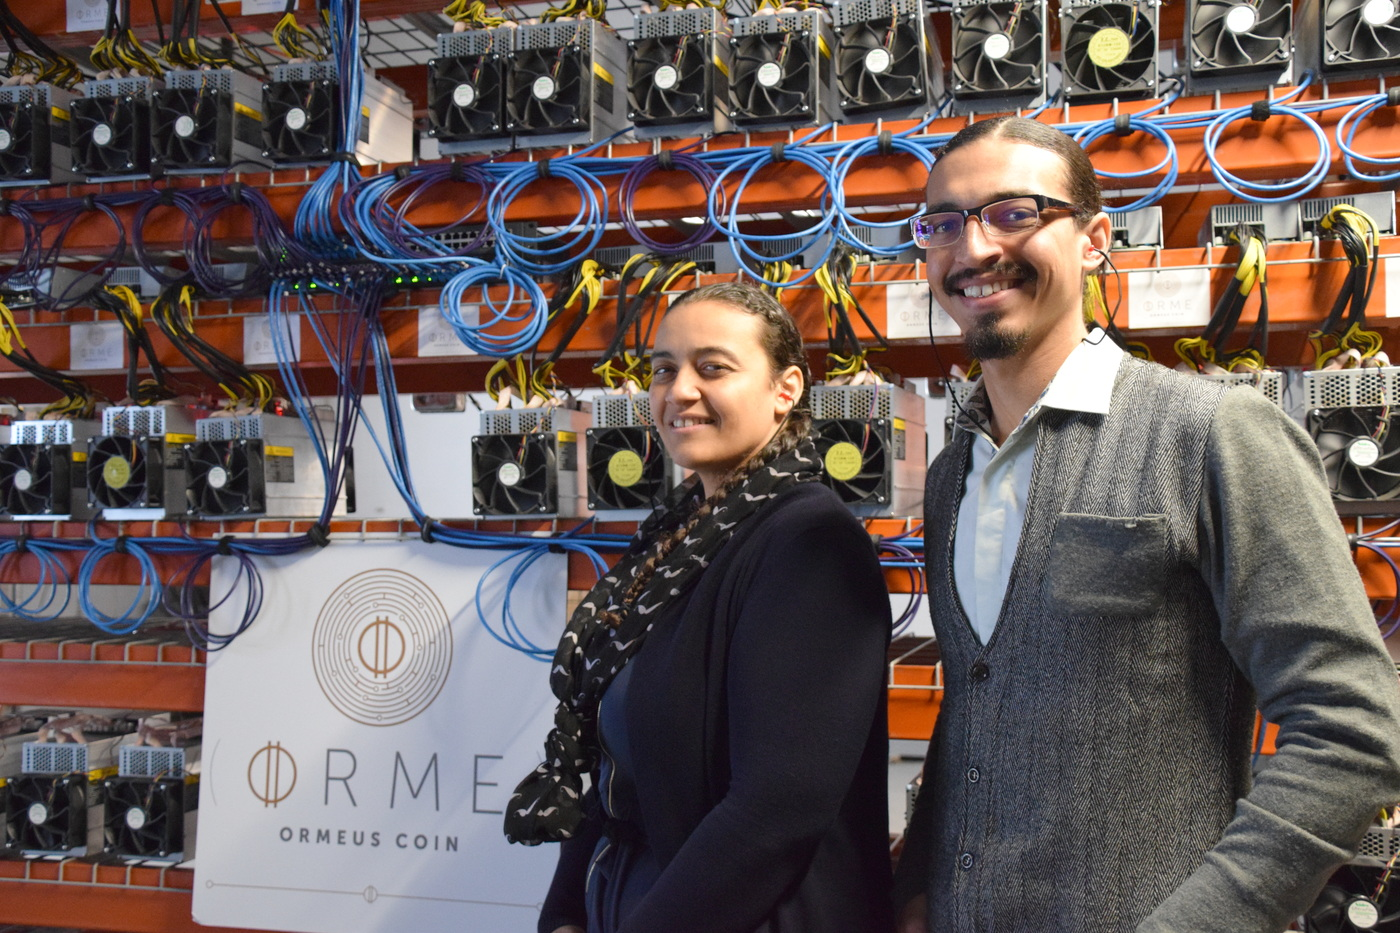 Bitcoin mining in Massena: hope or hype? | NCPR News